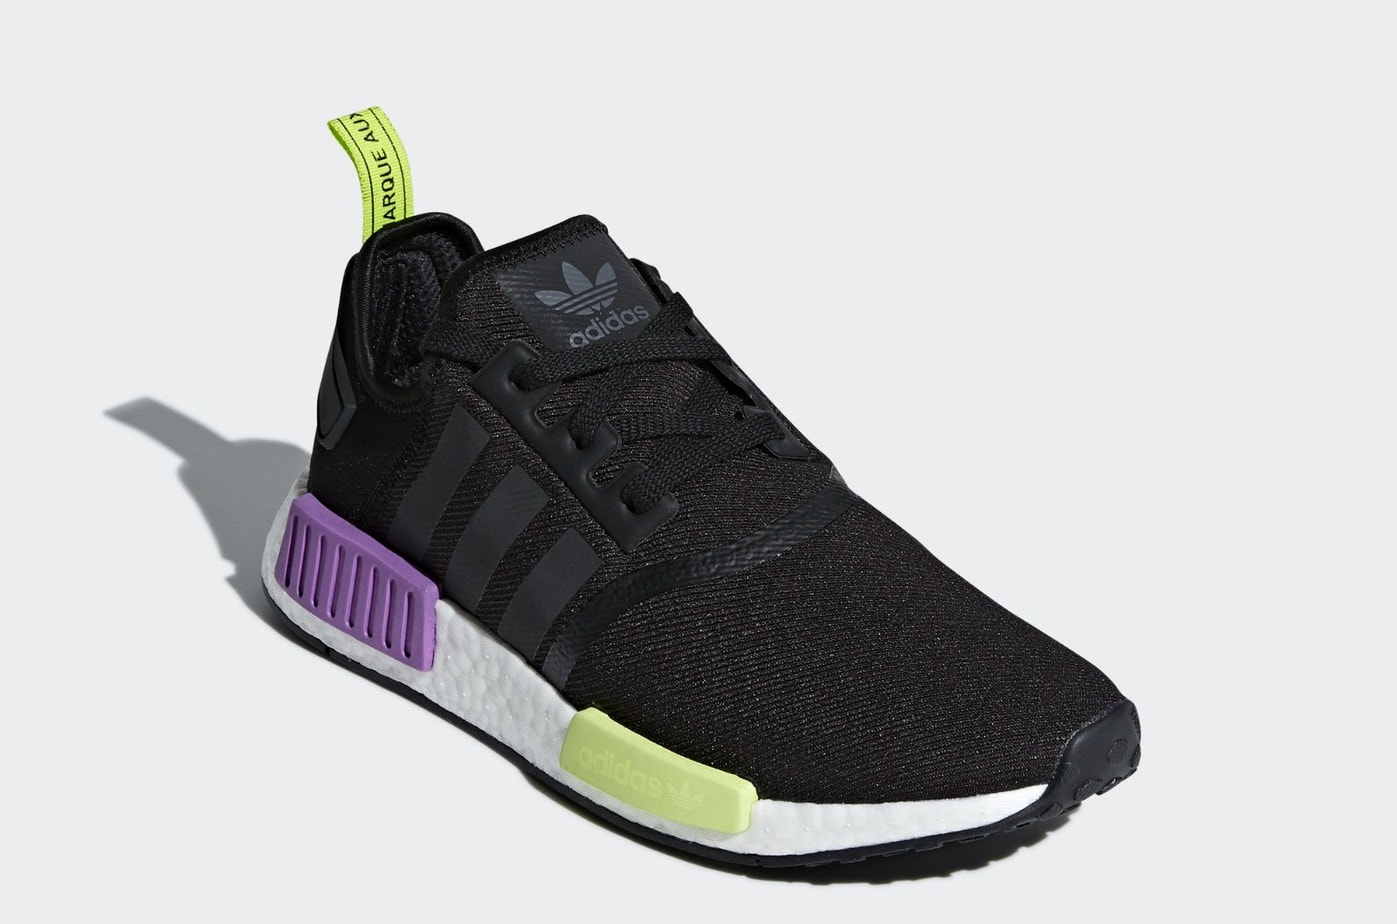 buy popular c3909 690f9 The adidas NMD franchise has taken on plenty of new looks and colorways  since it s 2015 release. Now, adidas is taking a slightly newer approach to  the ...